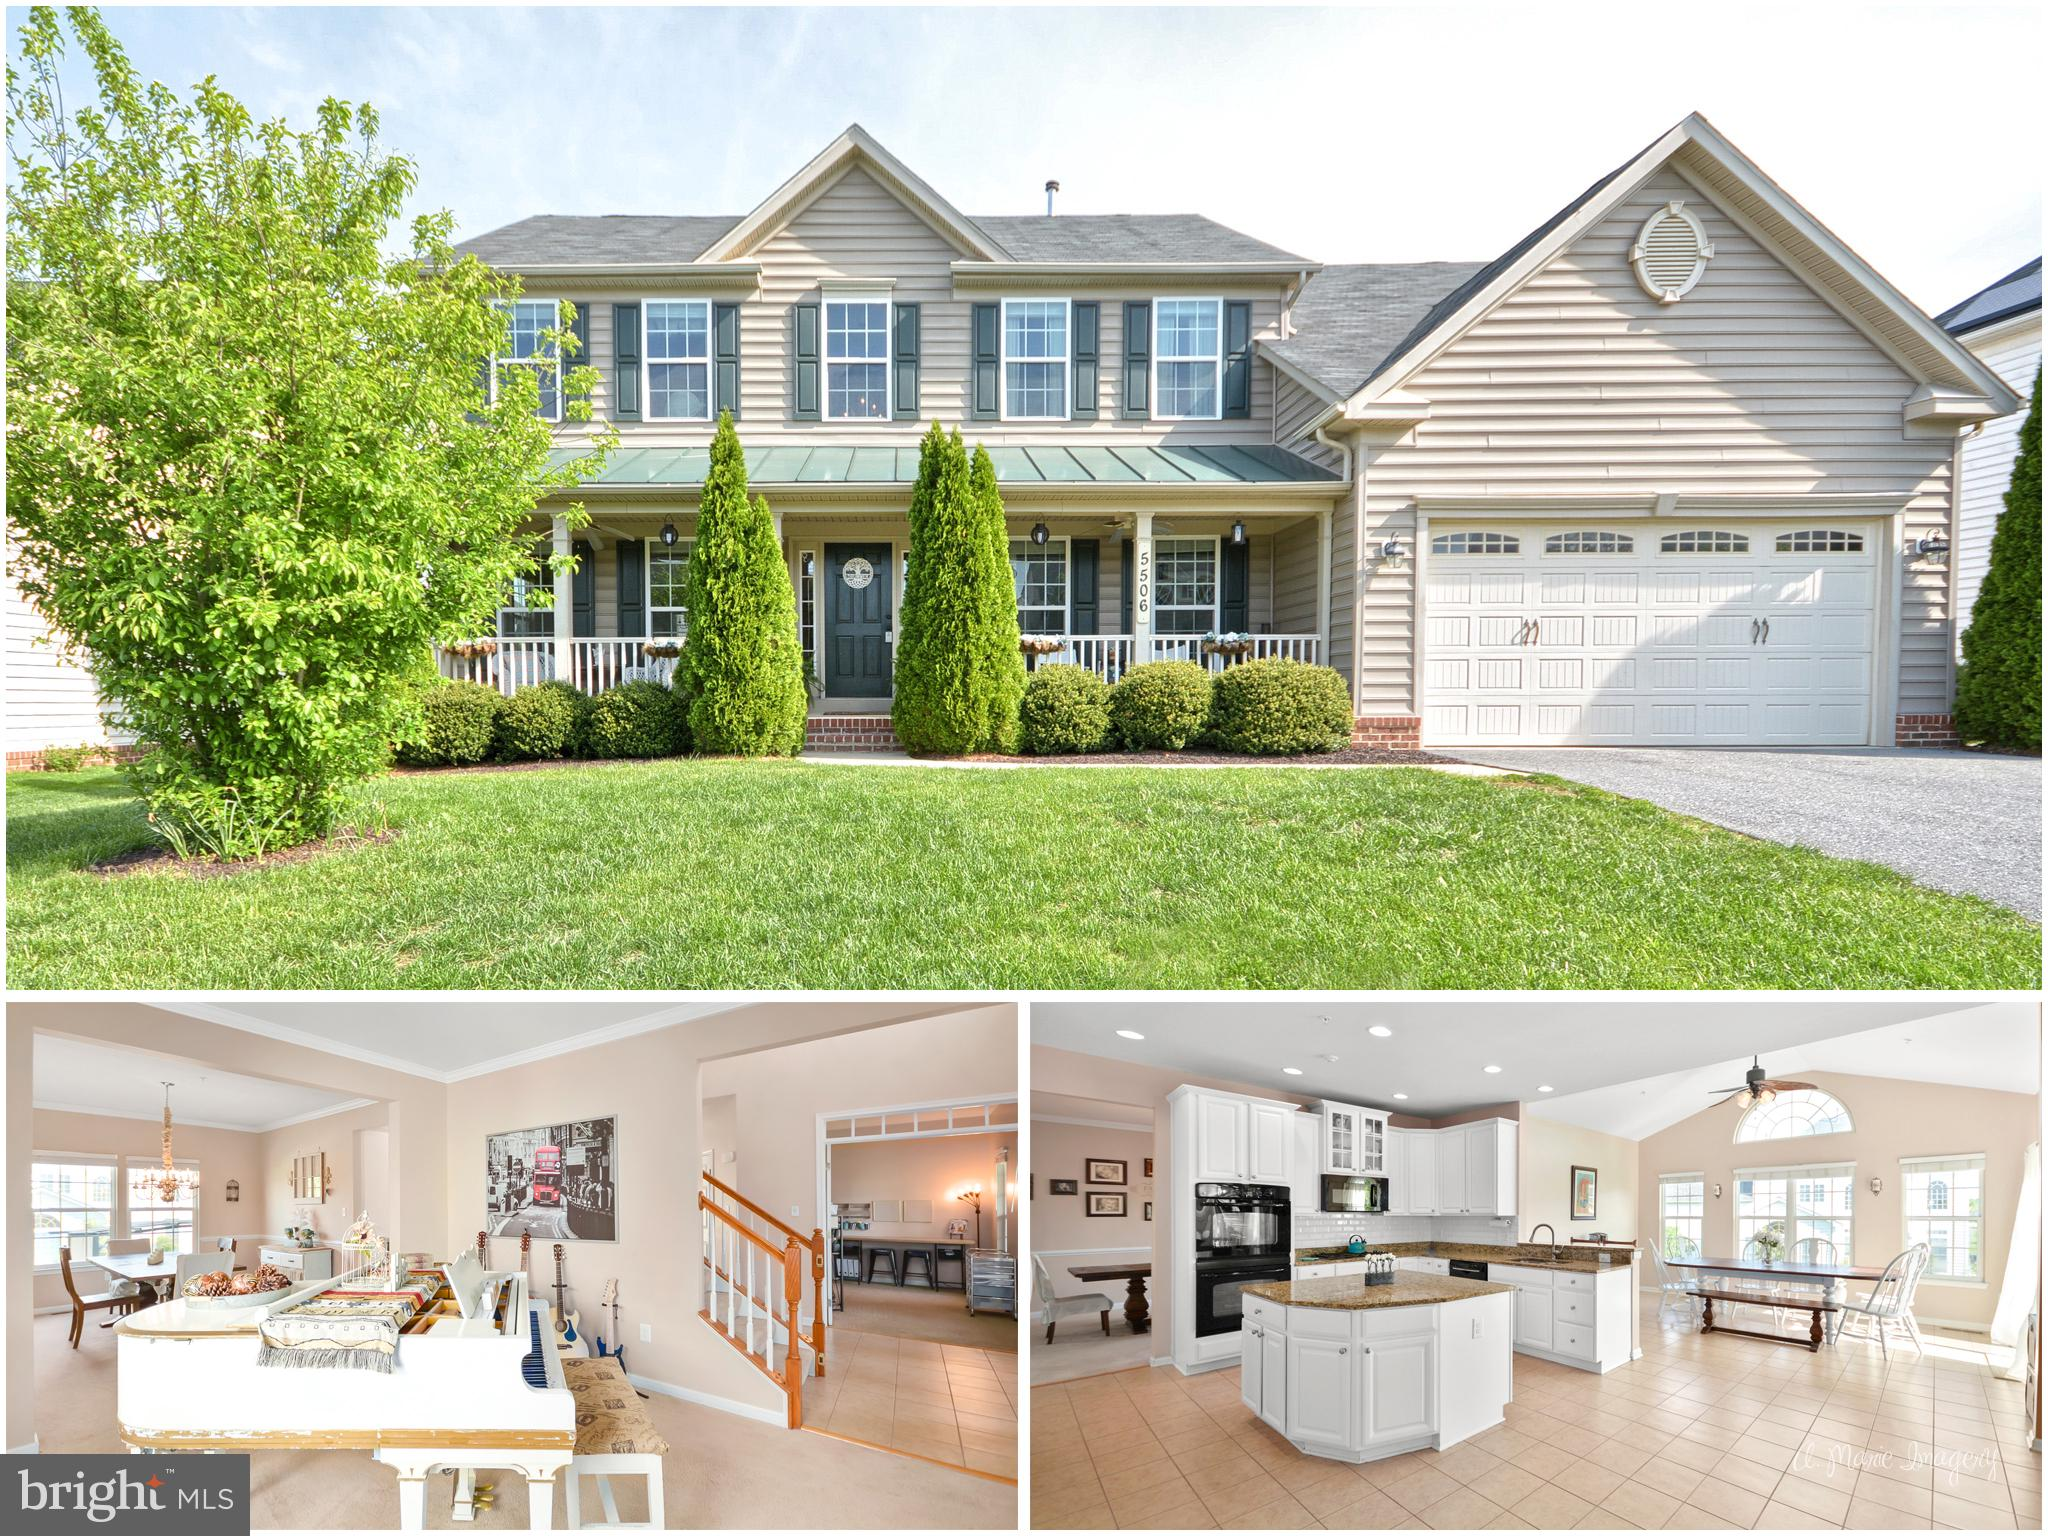 5506 YOUNG FAMILY TRL W, ADAMSTOWN, MD 21710